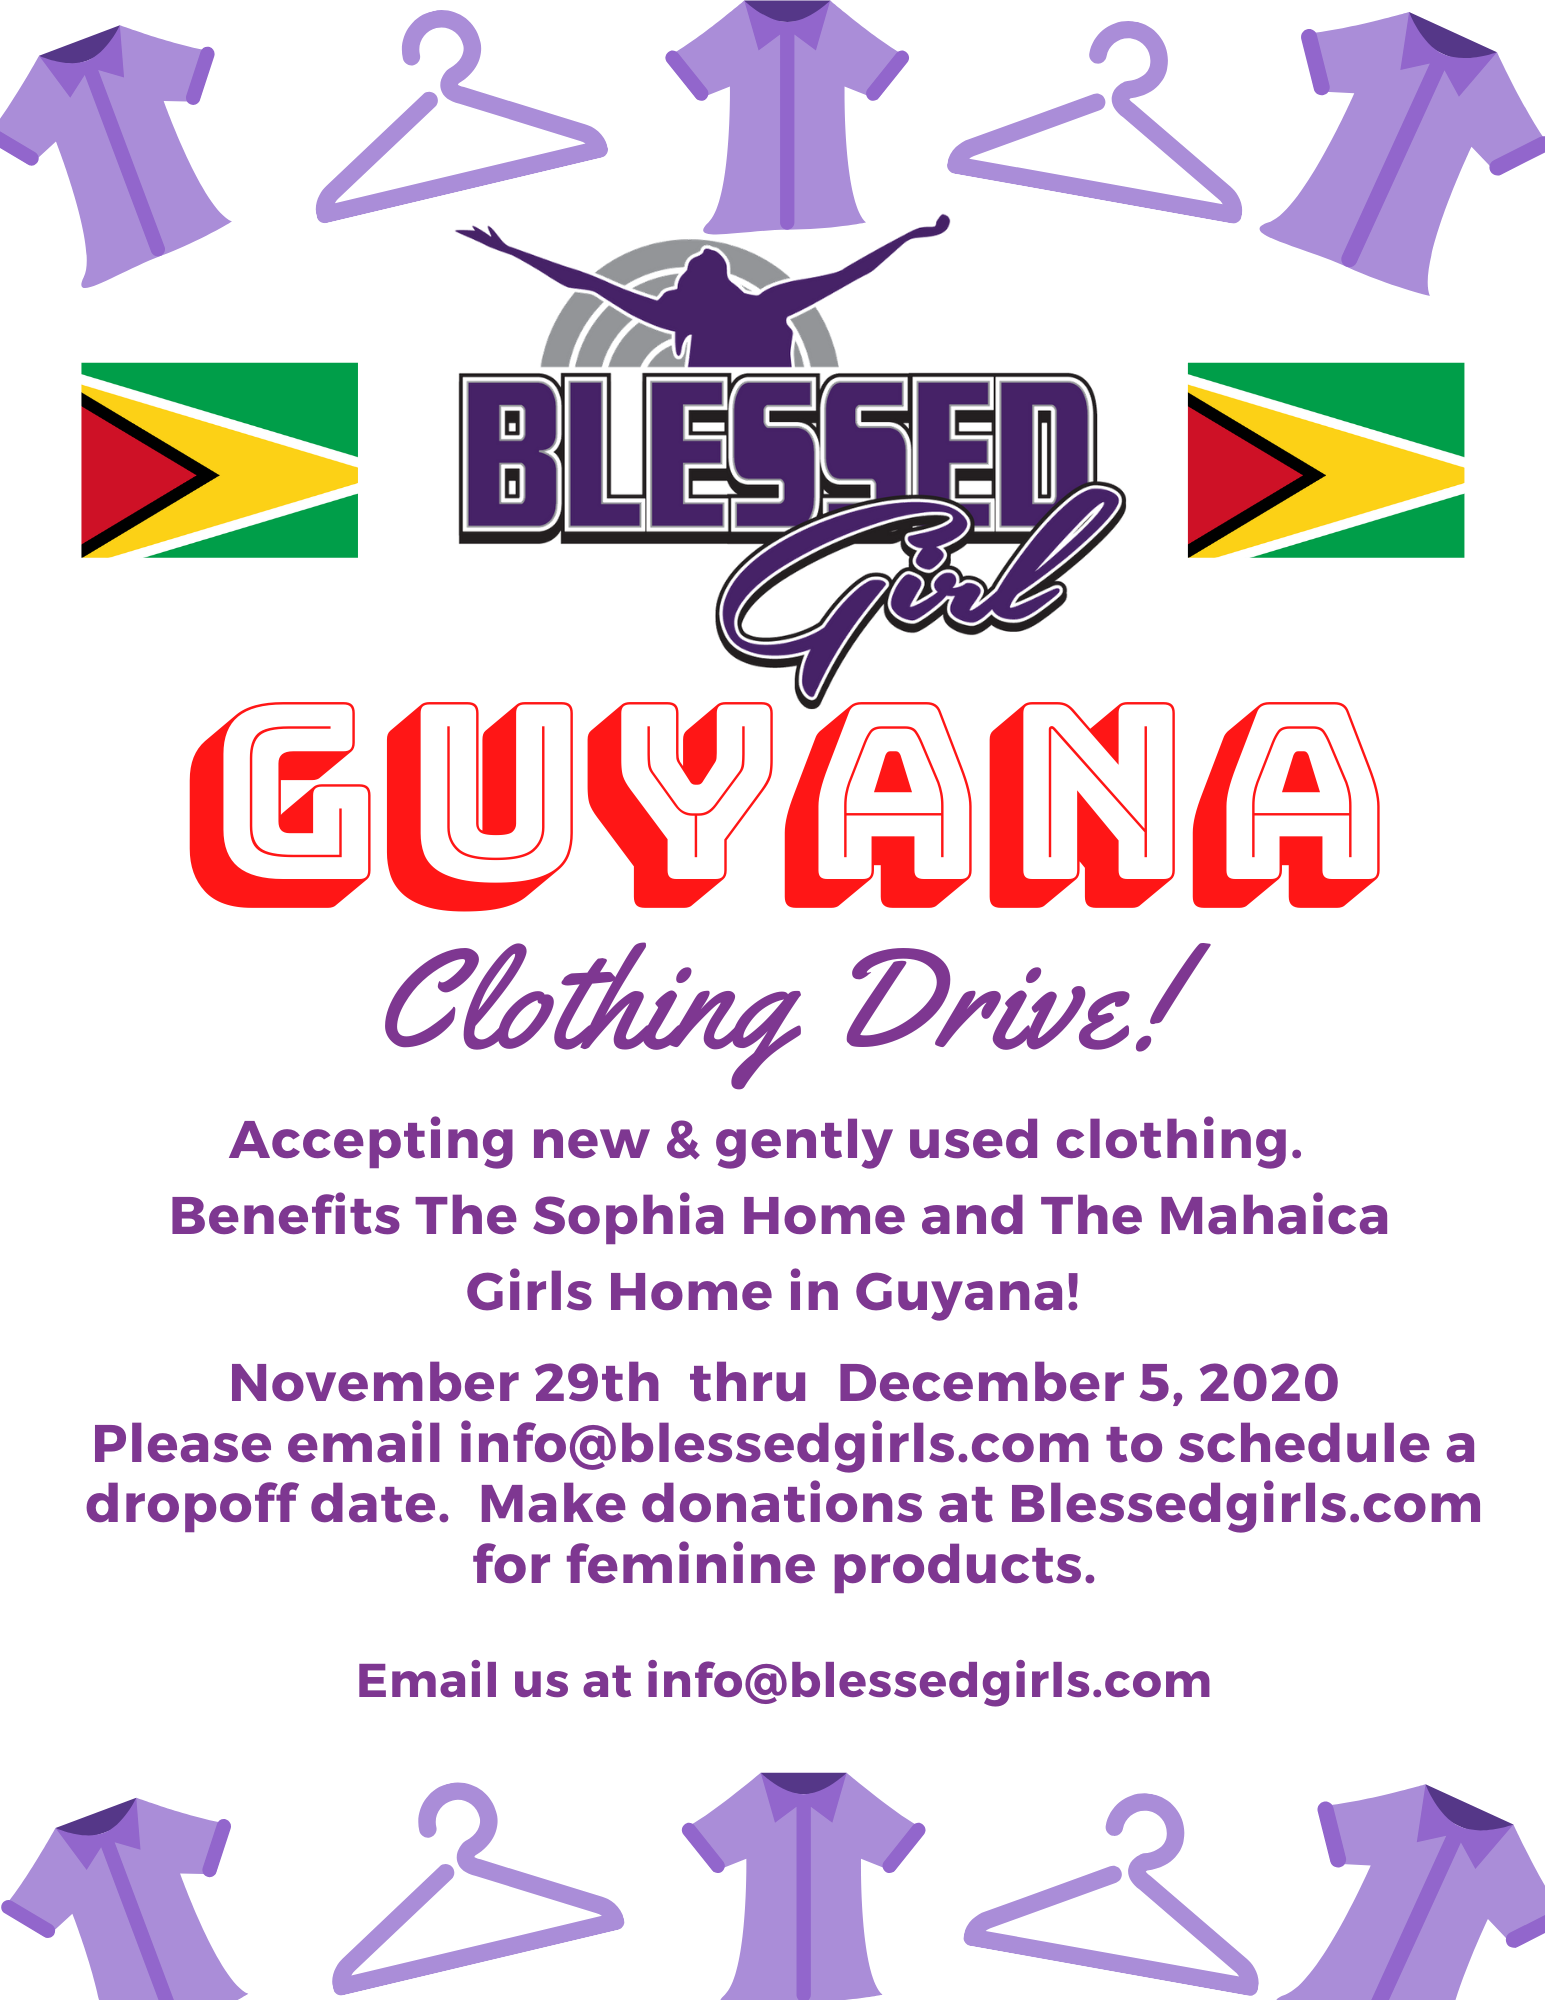 Clothing drive 2020